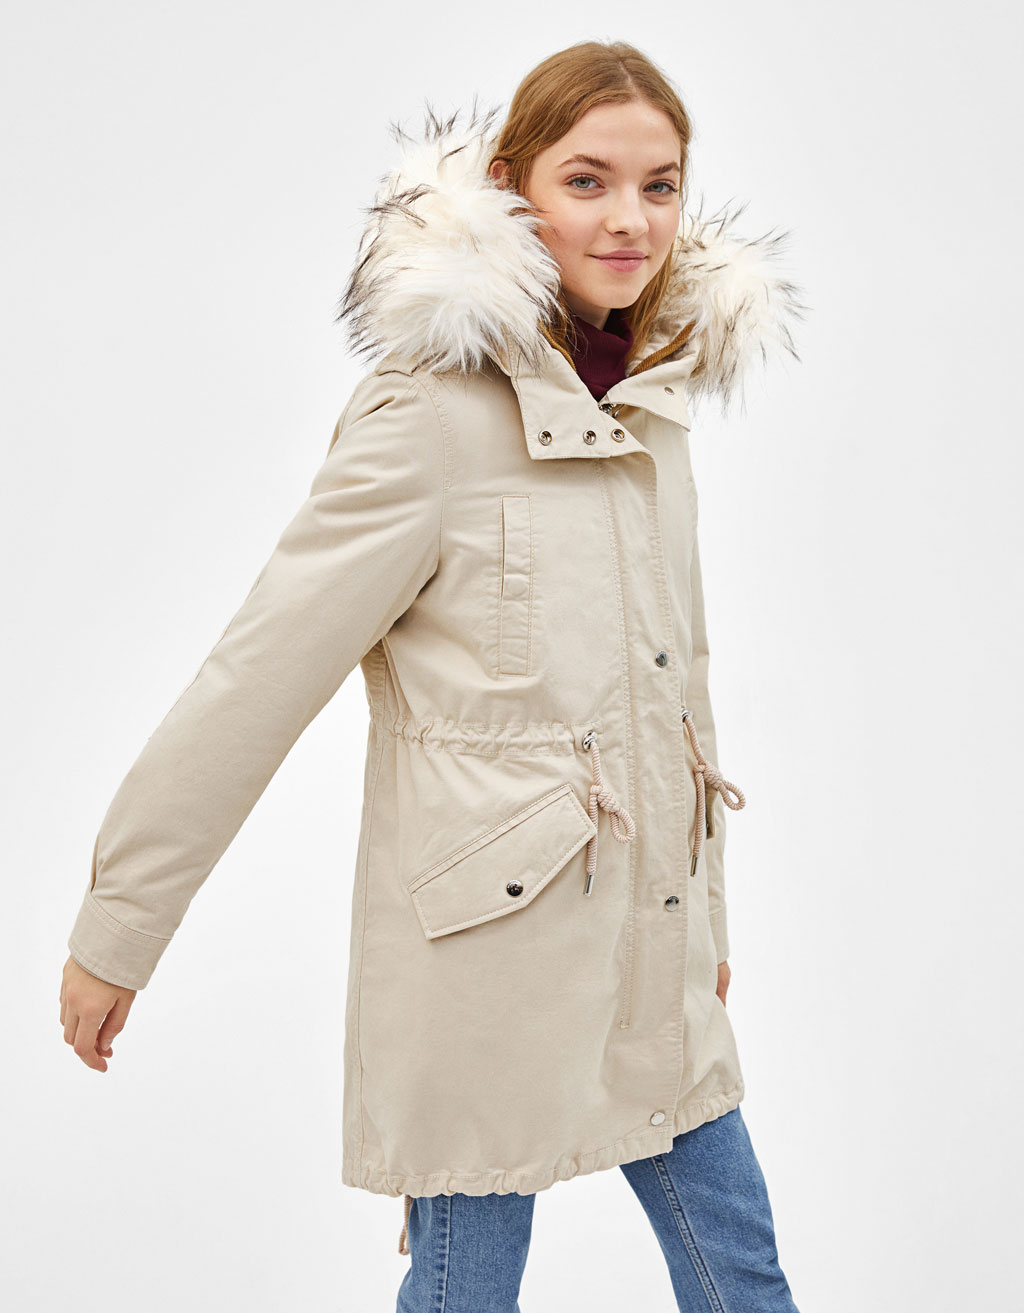 new product 89431 e7f10 Parka-style coat with removable lining